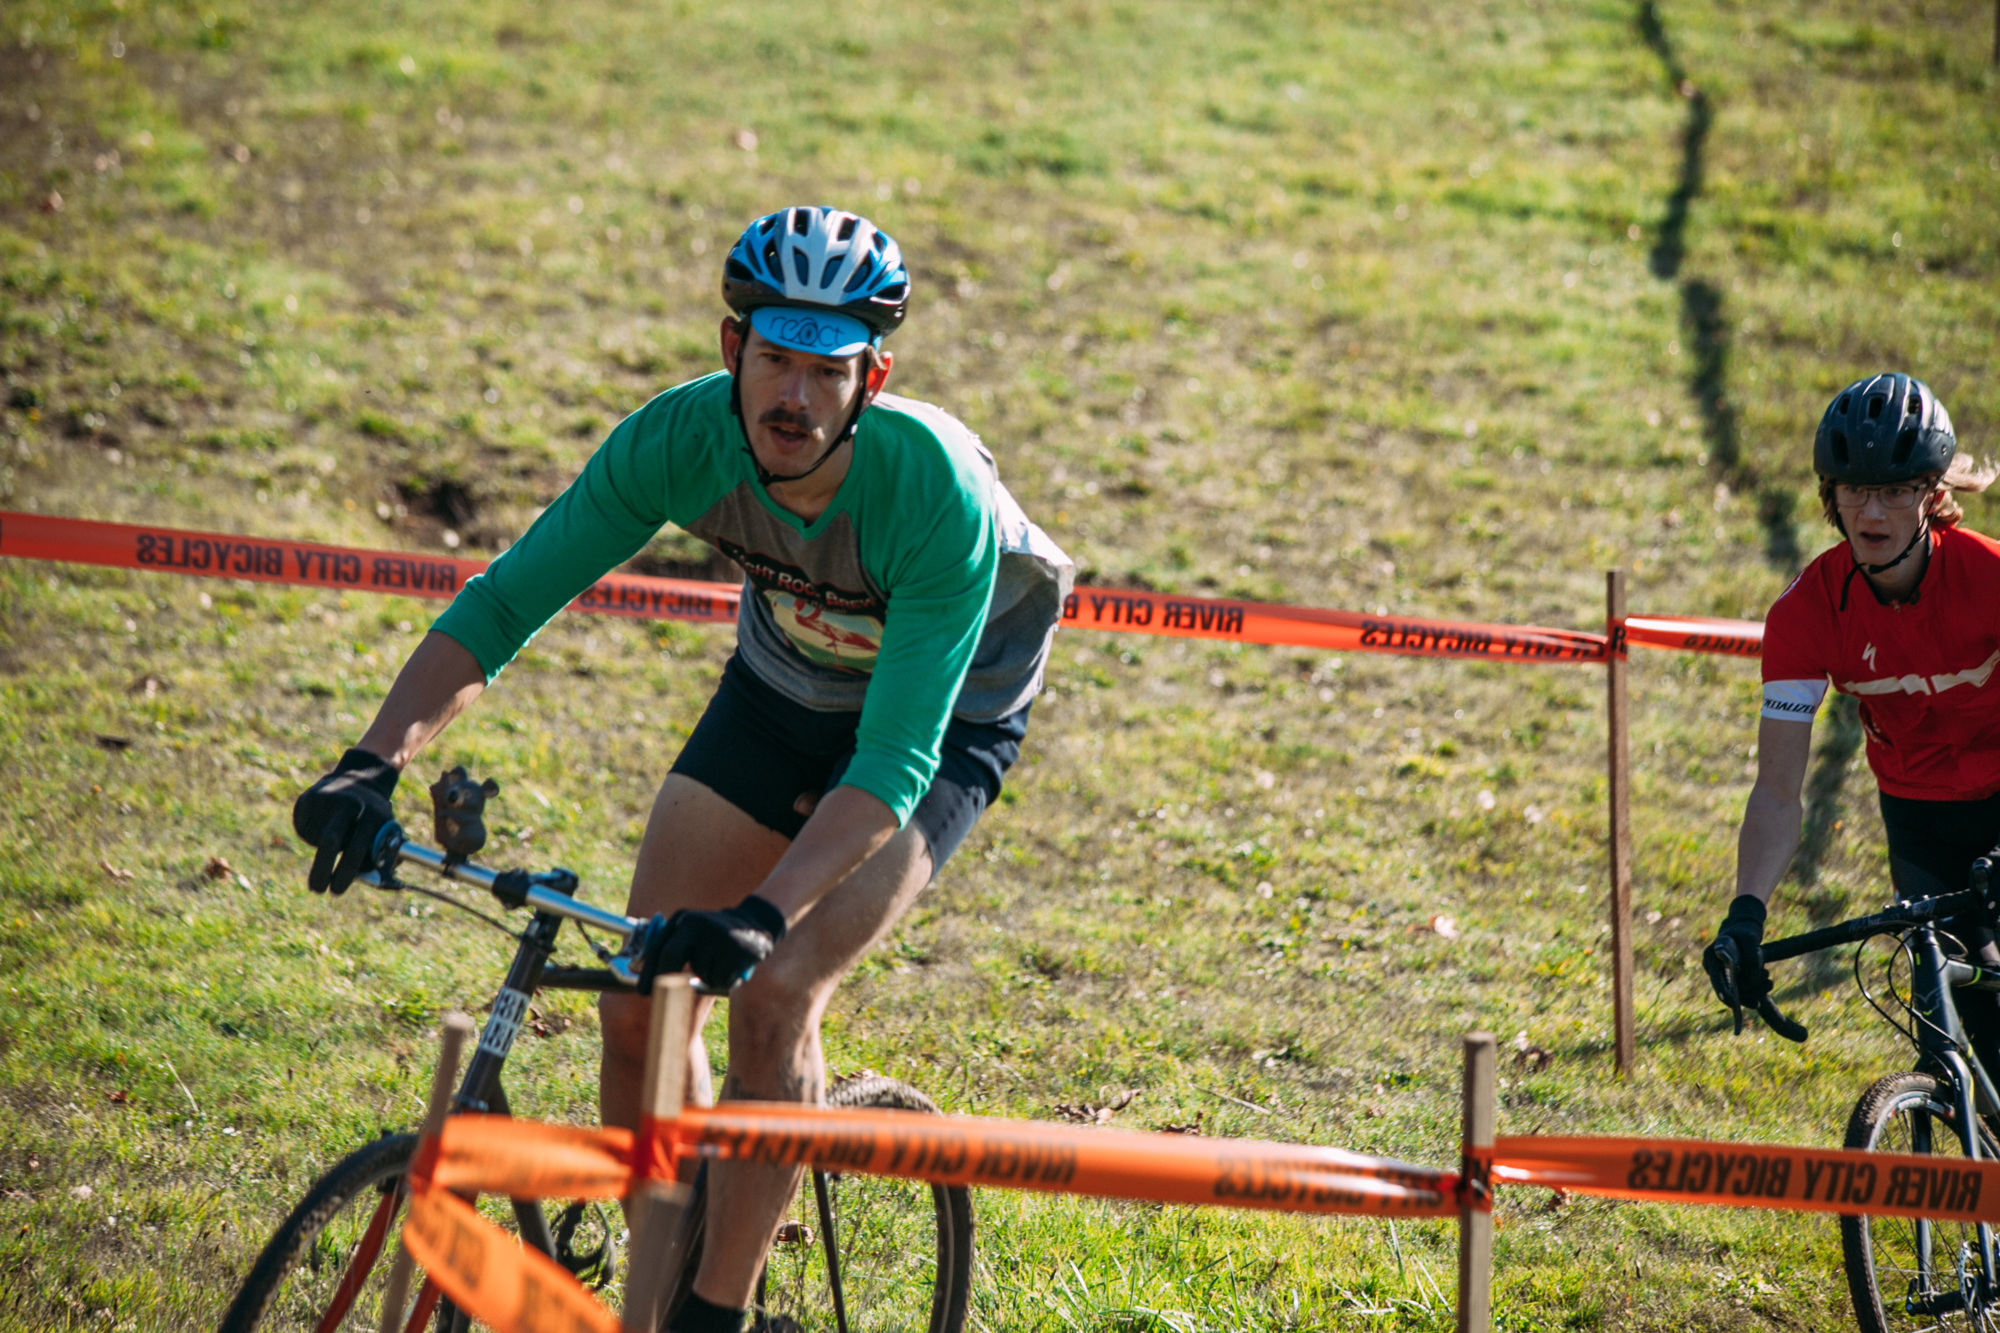 Cyclocross18_CCCX_RainierHS-3-mettlecycling.jpg